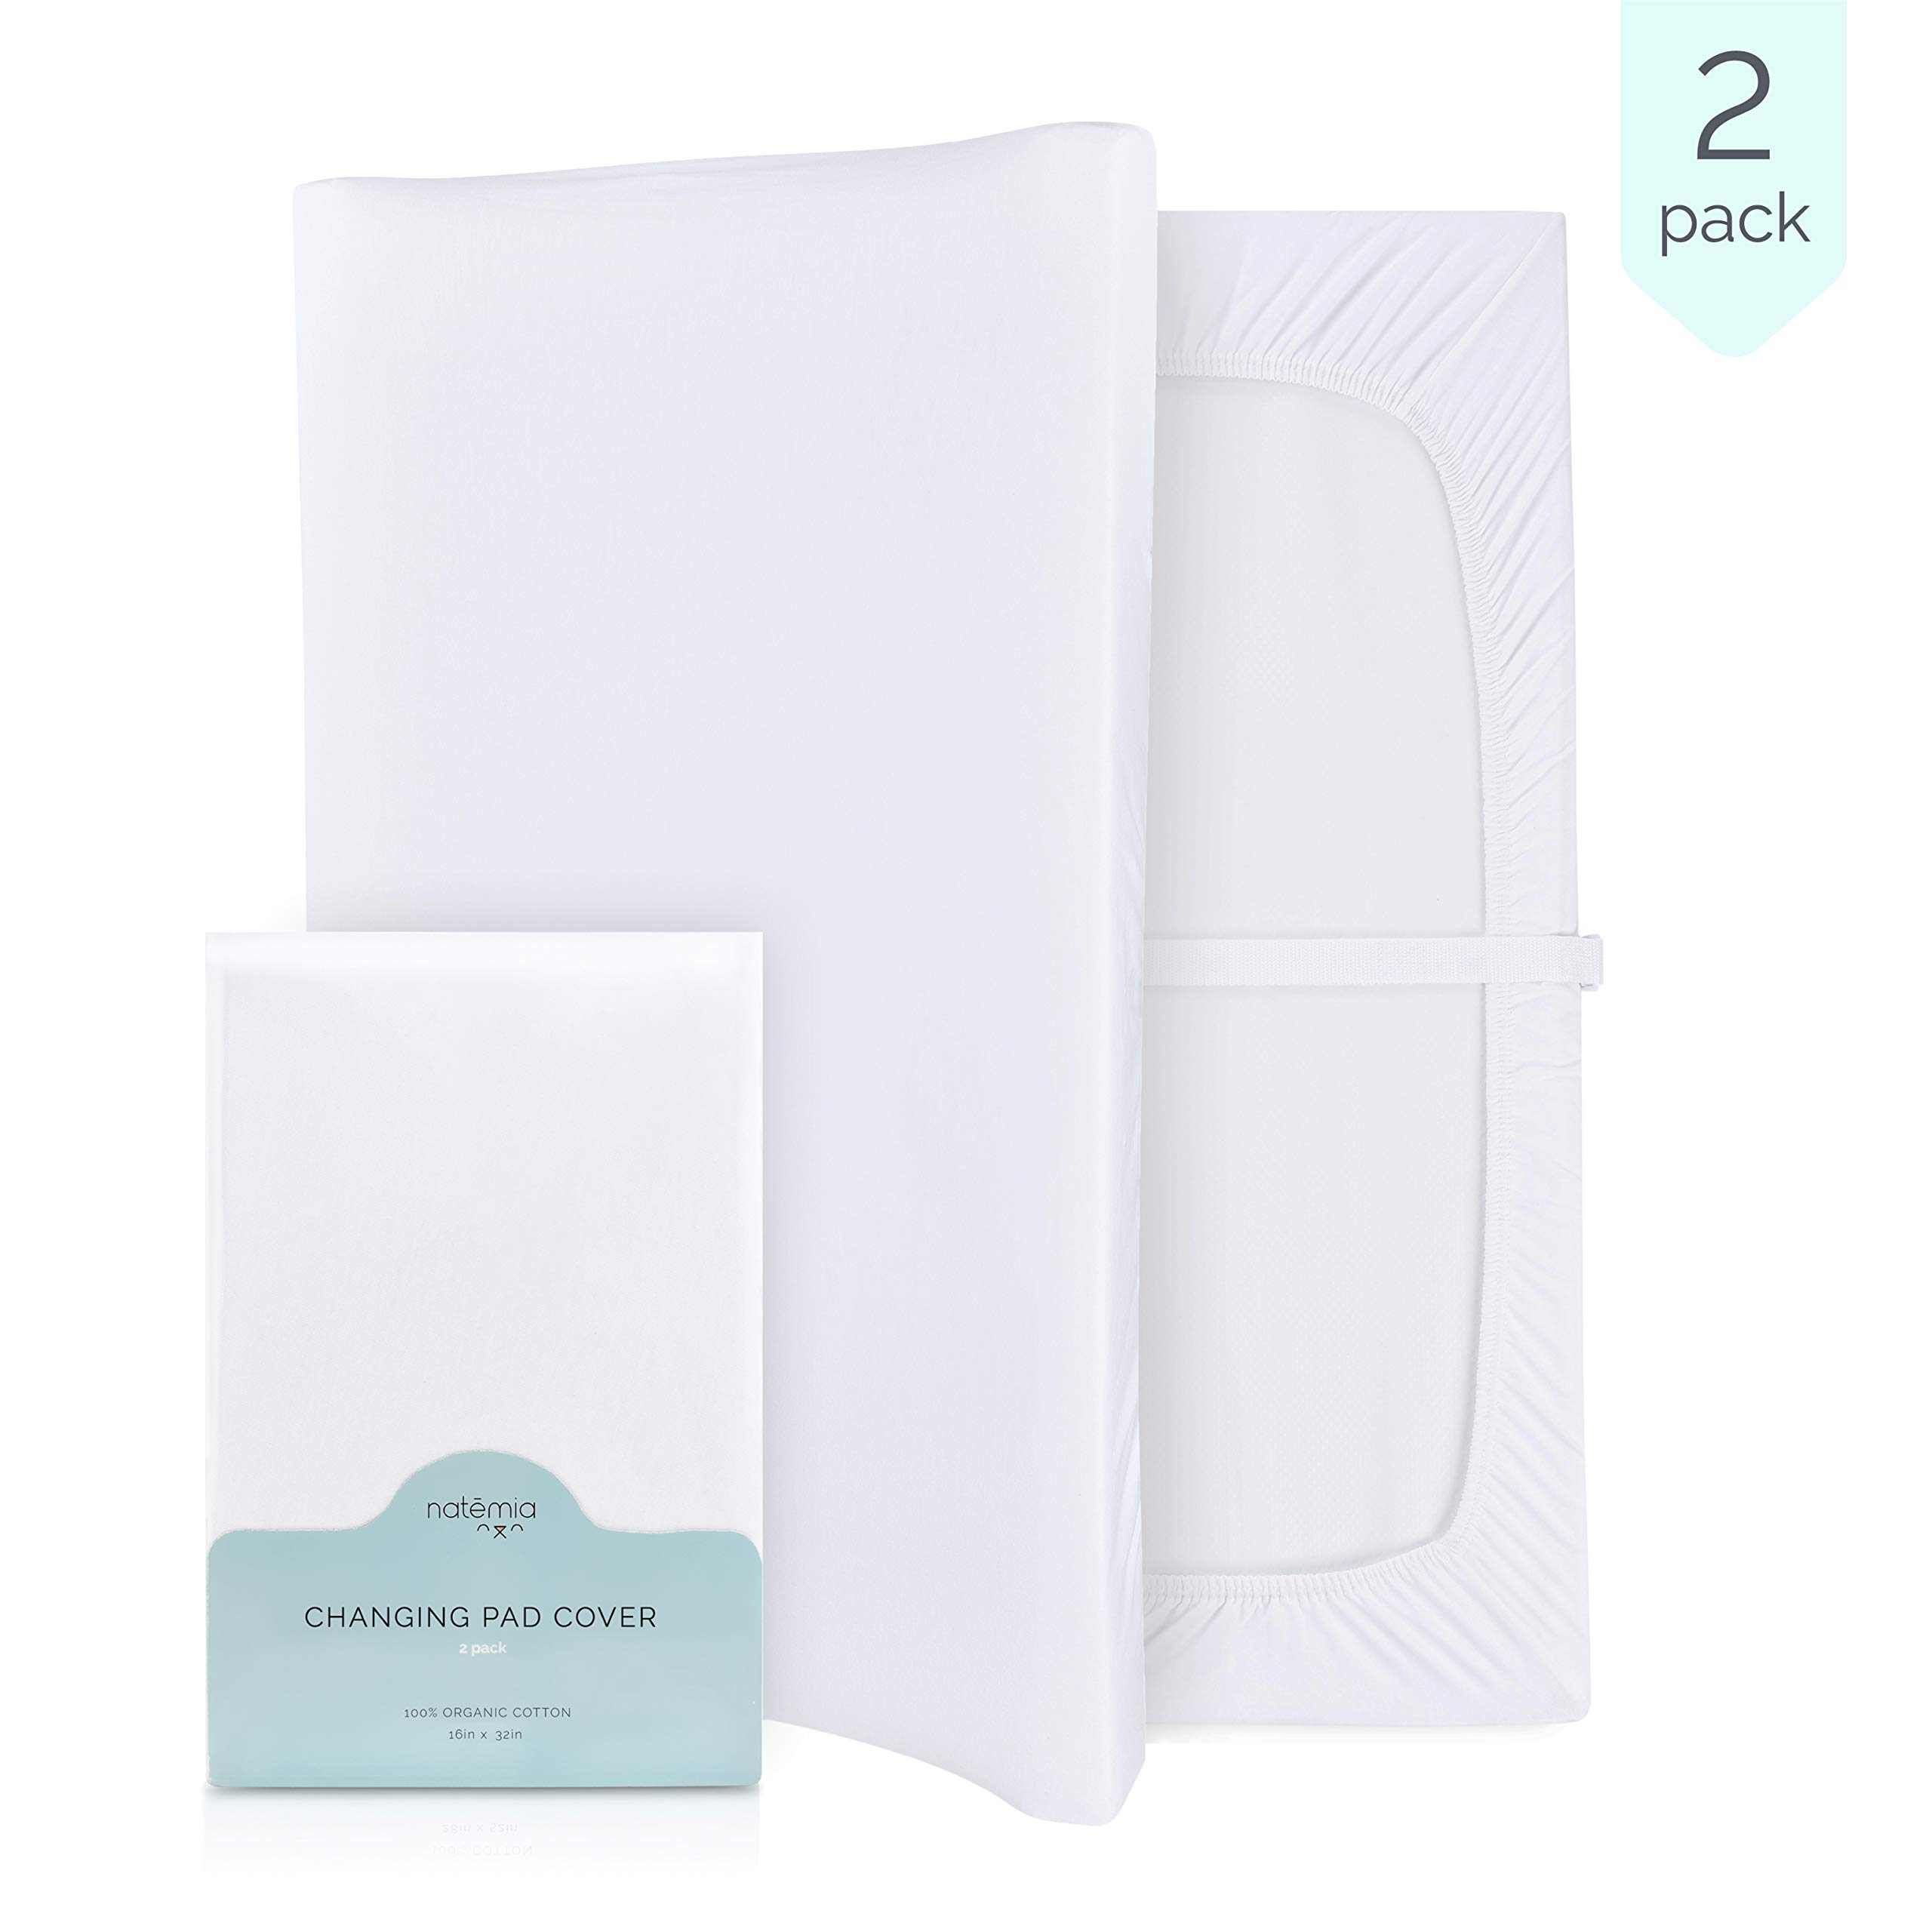 Natemia Changing Pad Cover Set - 100% Turkish Organic Jersey Cotton - 2 Pack 16X32 - Perfect for Cradle and Bassinet - Silky Soft and Hypoallergenic - Great Baby Shower/Registry Gift - GOTS Certified by Natemia